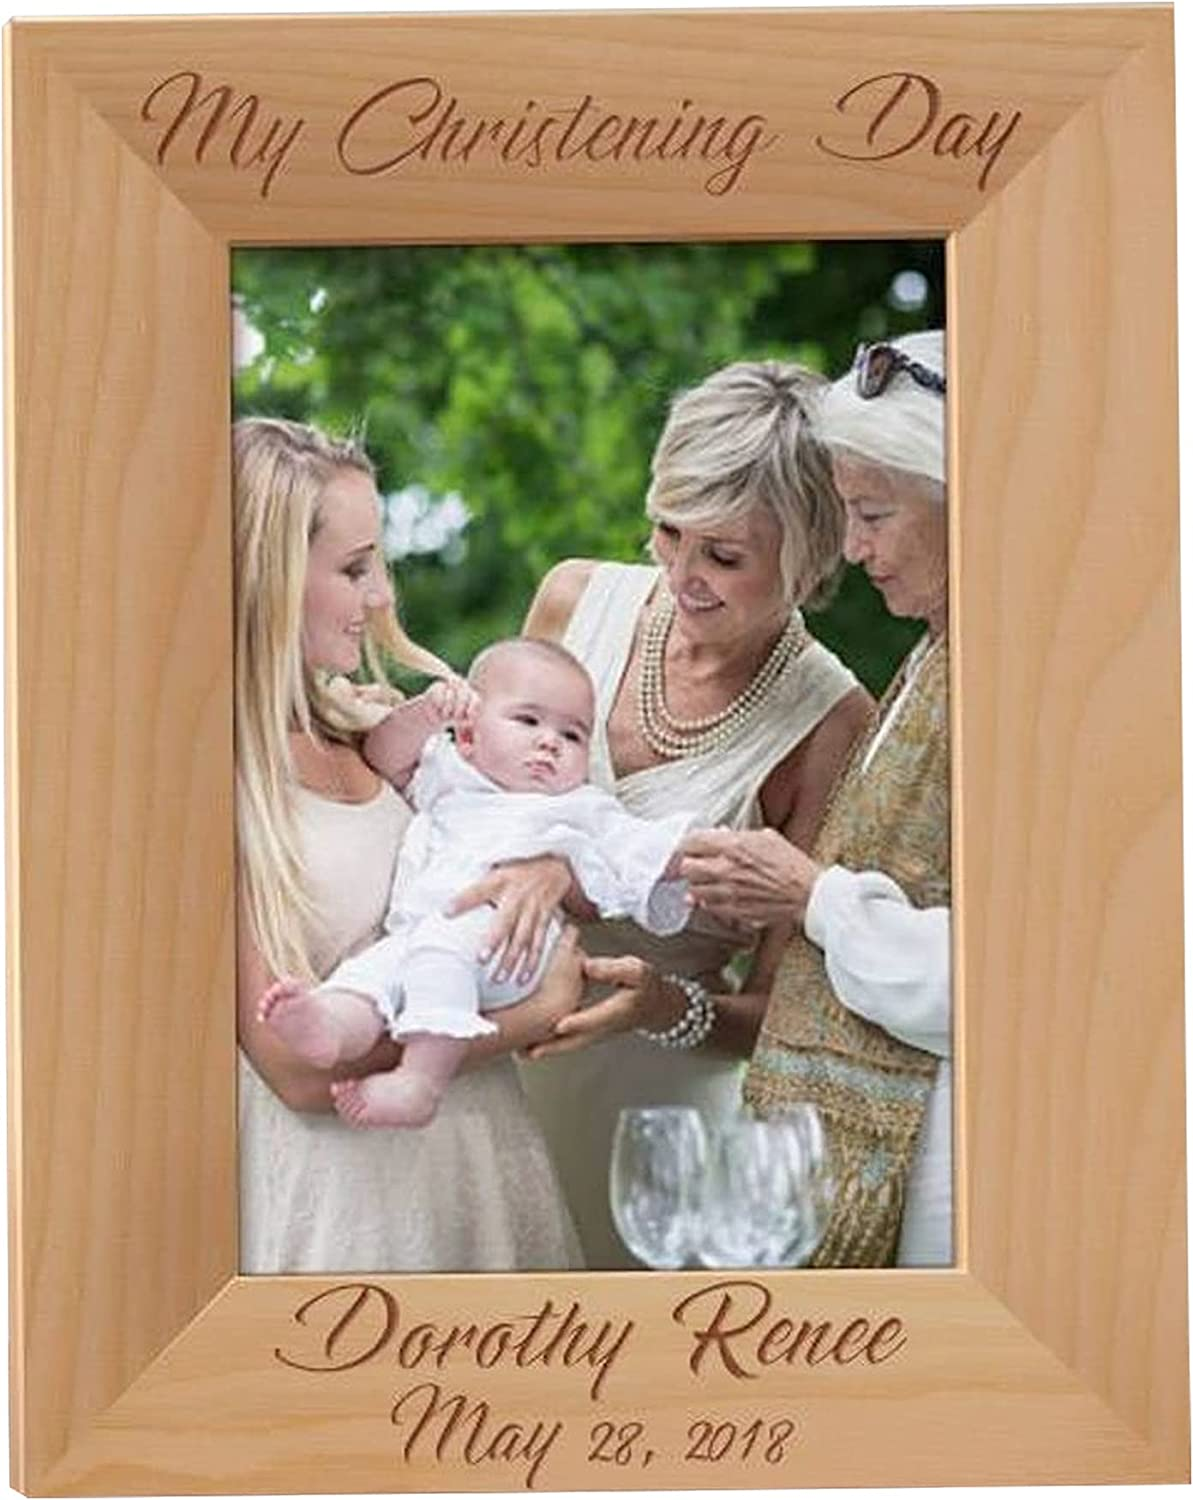 Christening Day Picture Frame Chri Frames Personalized Limited time sale Max 67% OFF